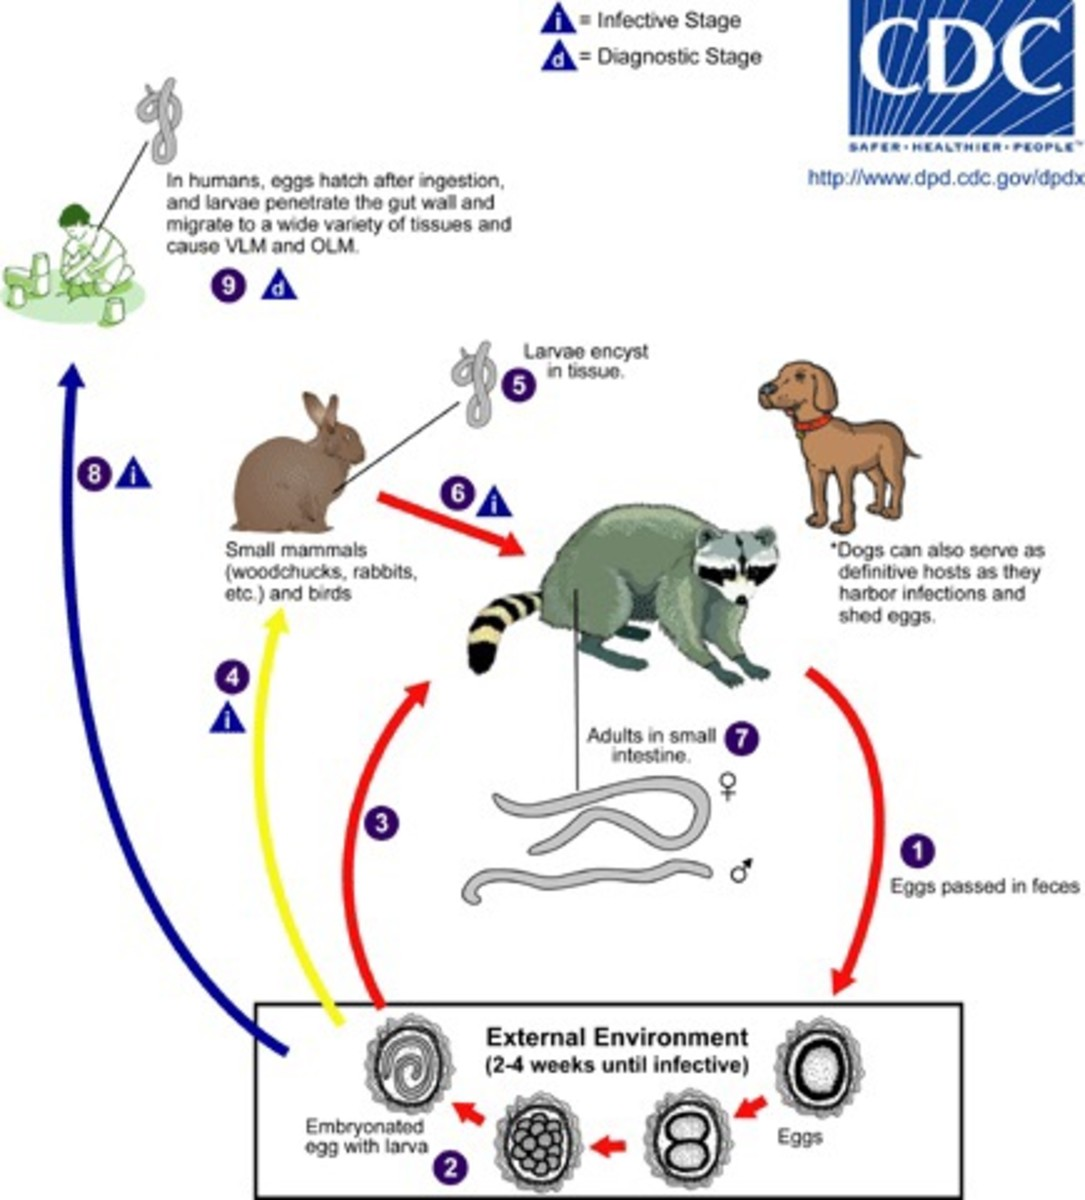 The kinkajou can take the place of the racoon in the life cycle of the roundworm shown in this diagram. VLM and OLM are different forms of the disease caused by the roundworm.